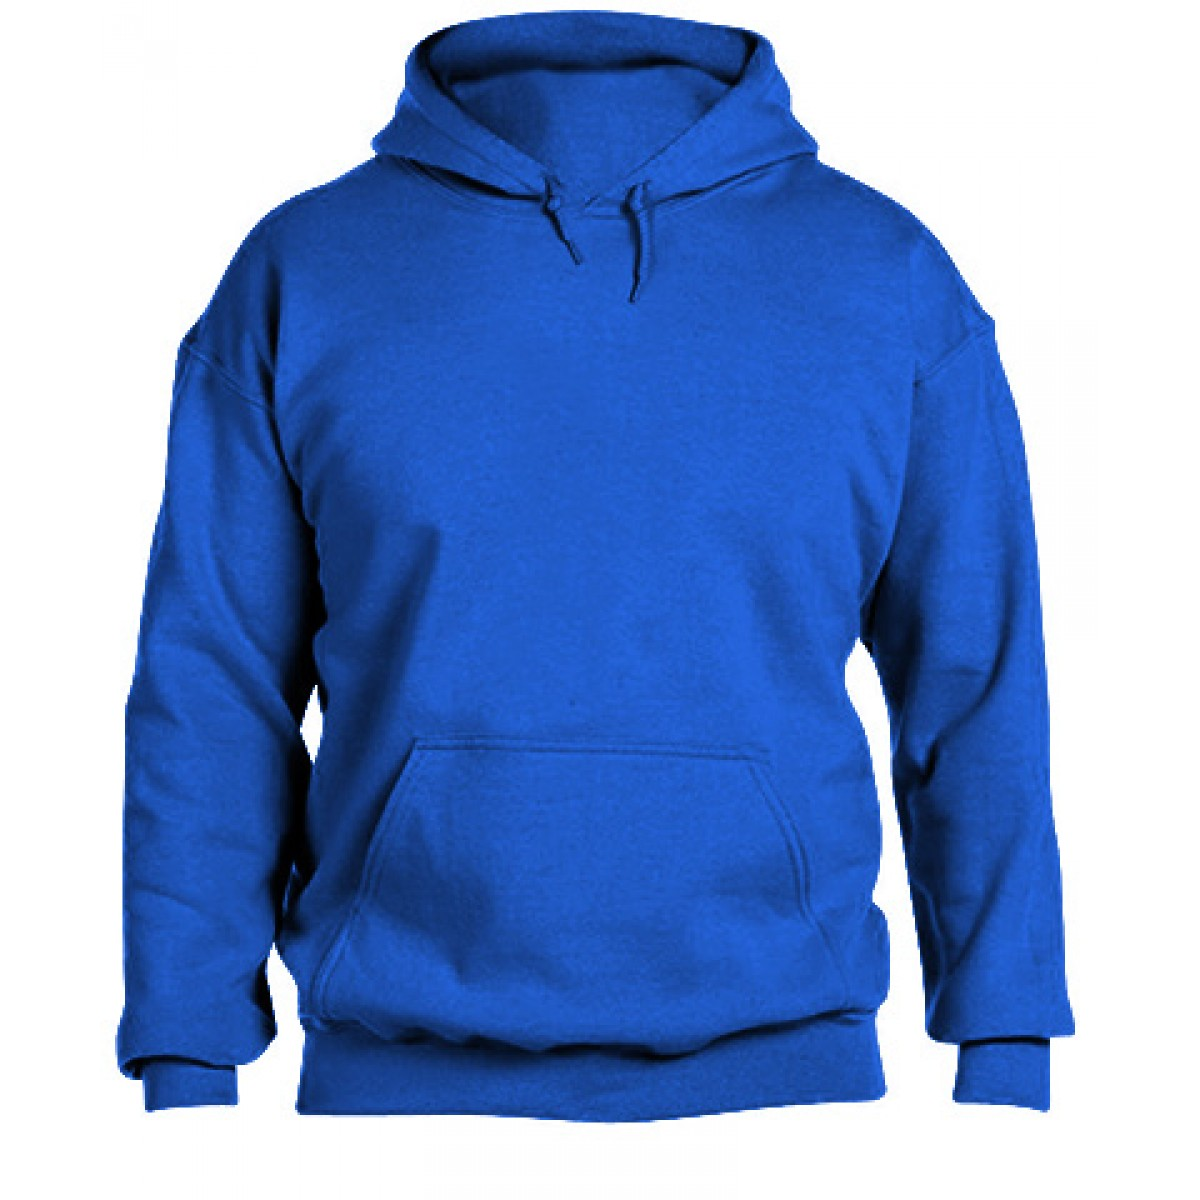 Hooded Sweatshirt  50/50 Heavy Blend-Royal Blue-XL